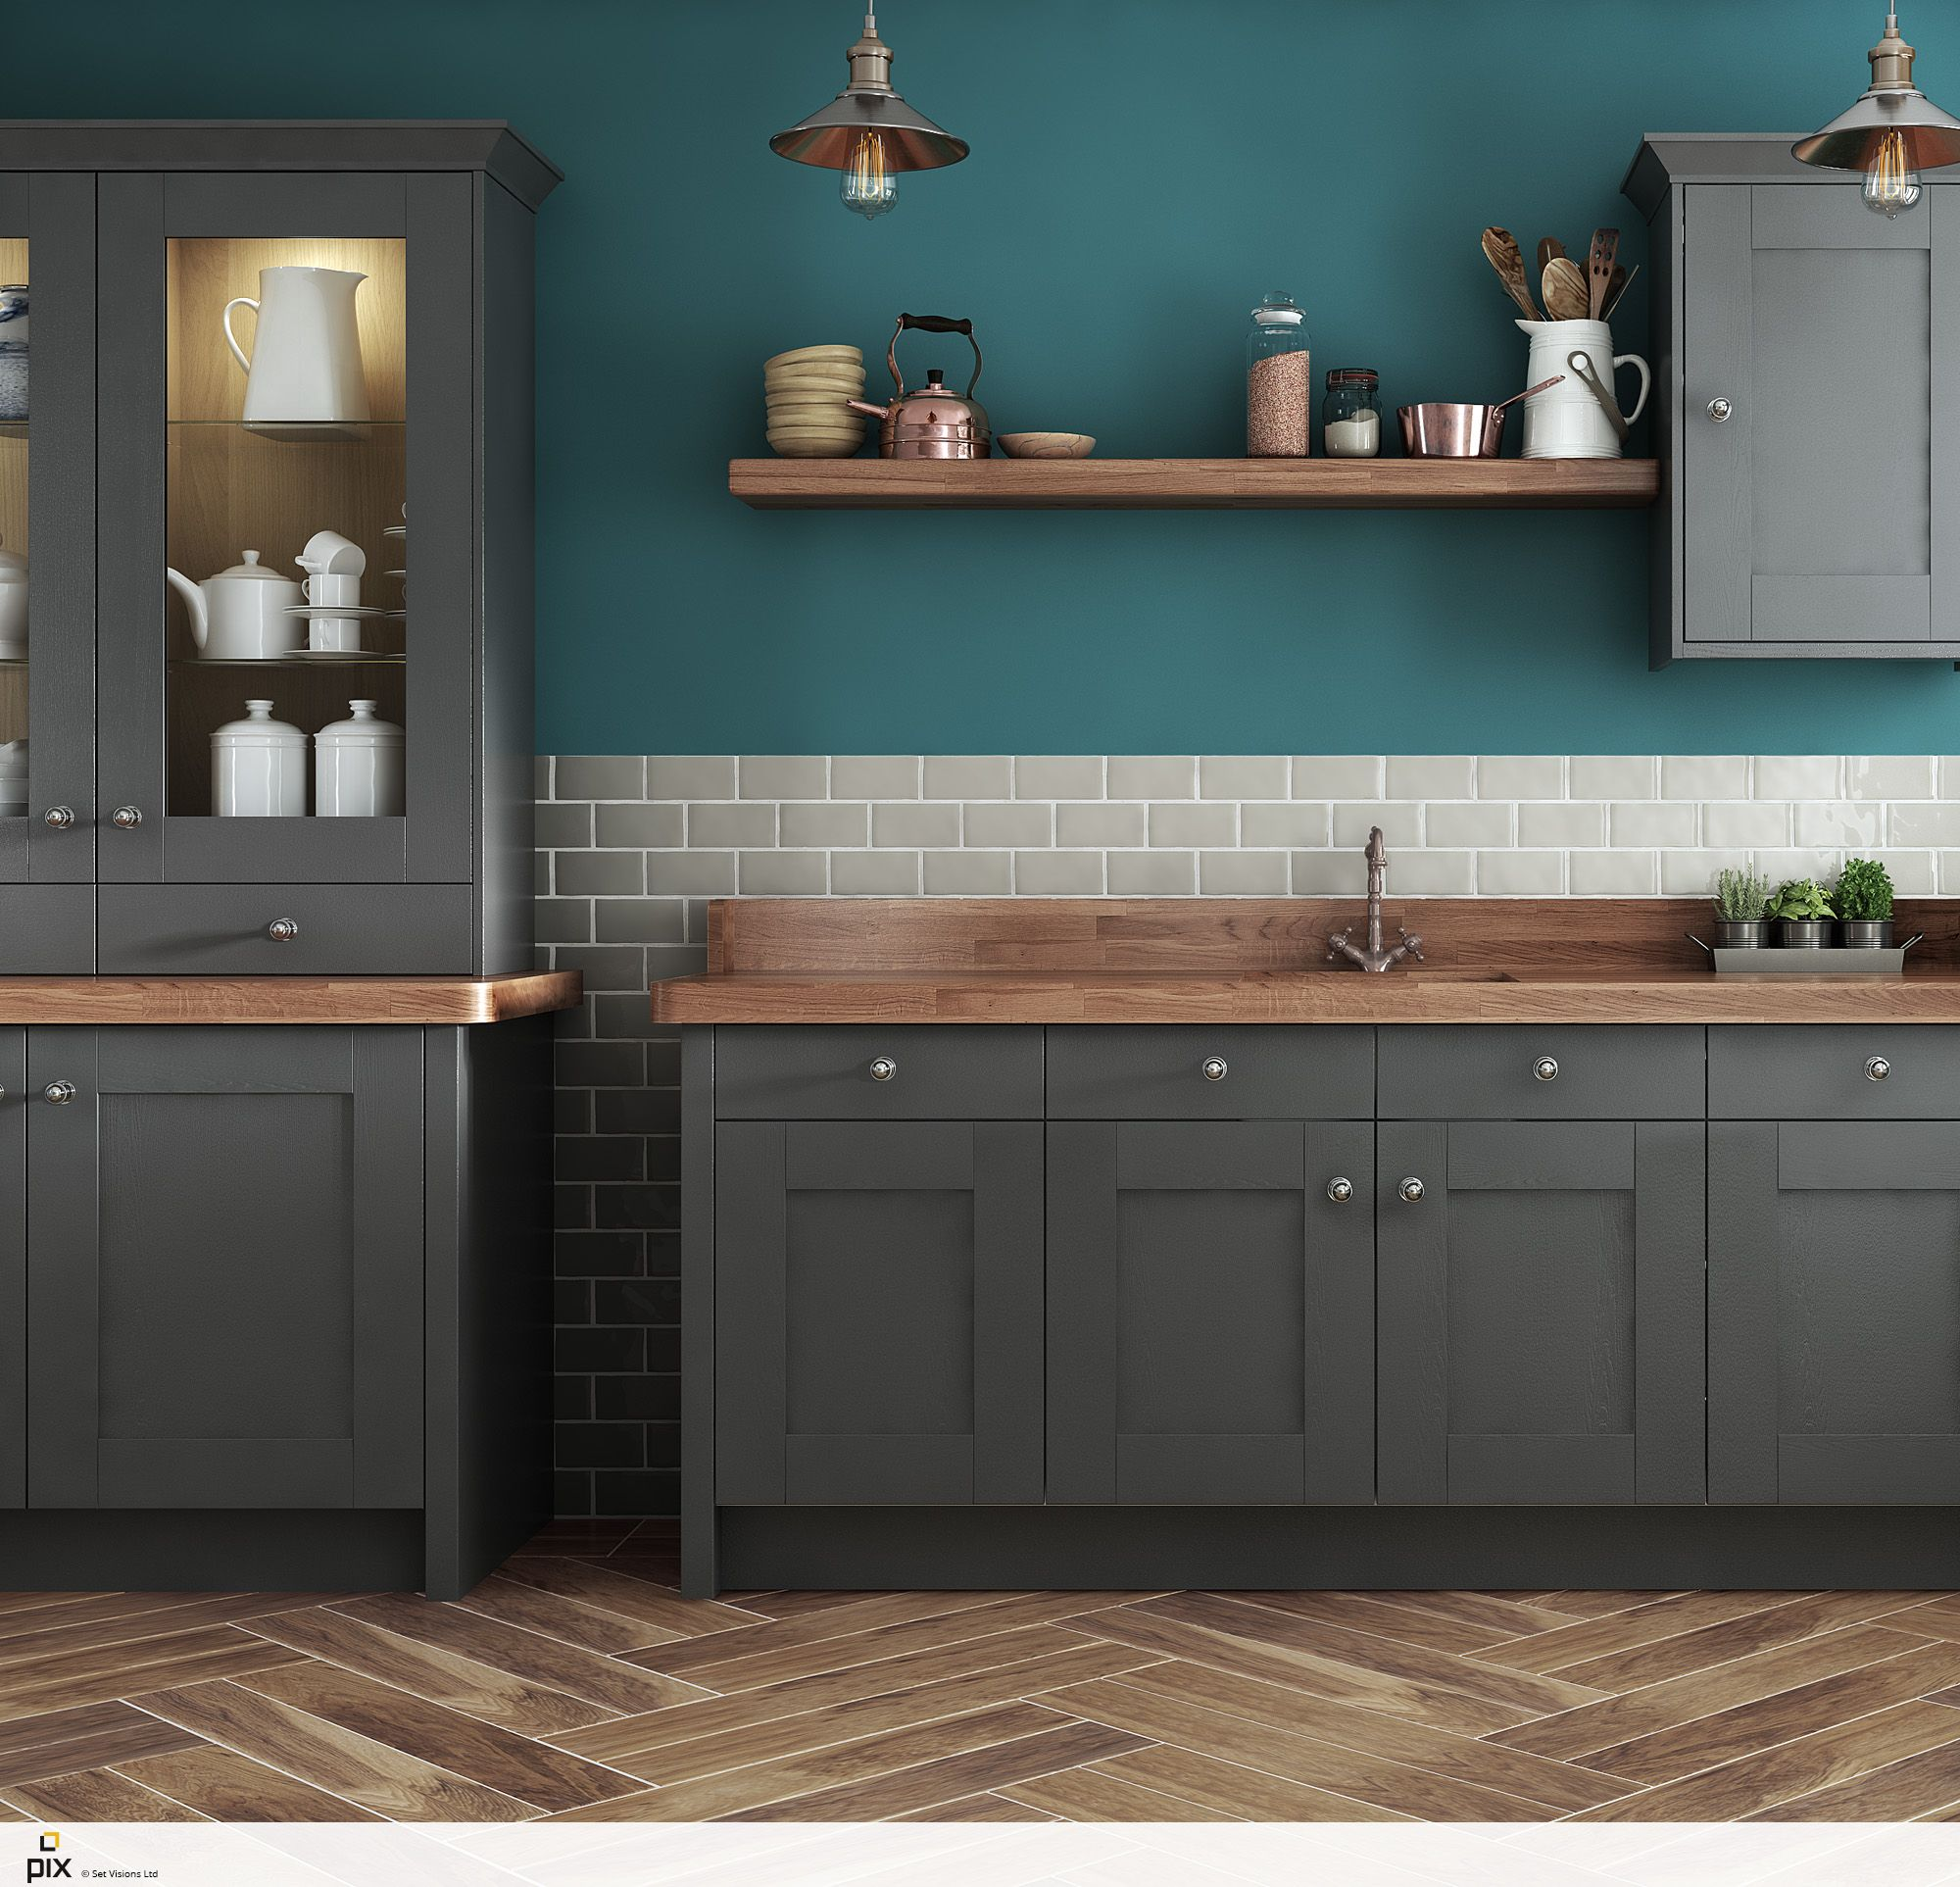 Cuisine Bleu Canard A Modern Classic Shaker Kitchen Is Influenced By The